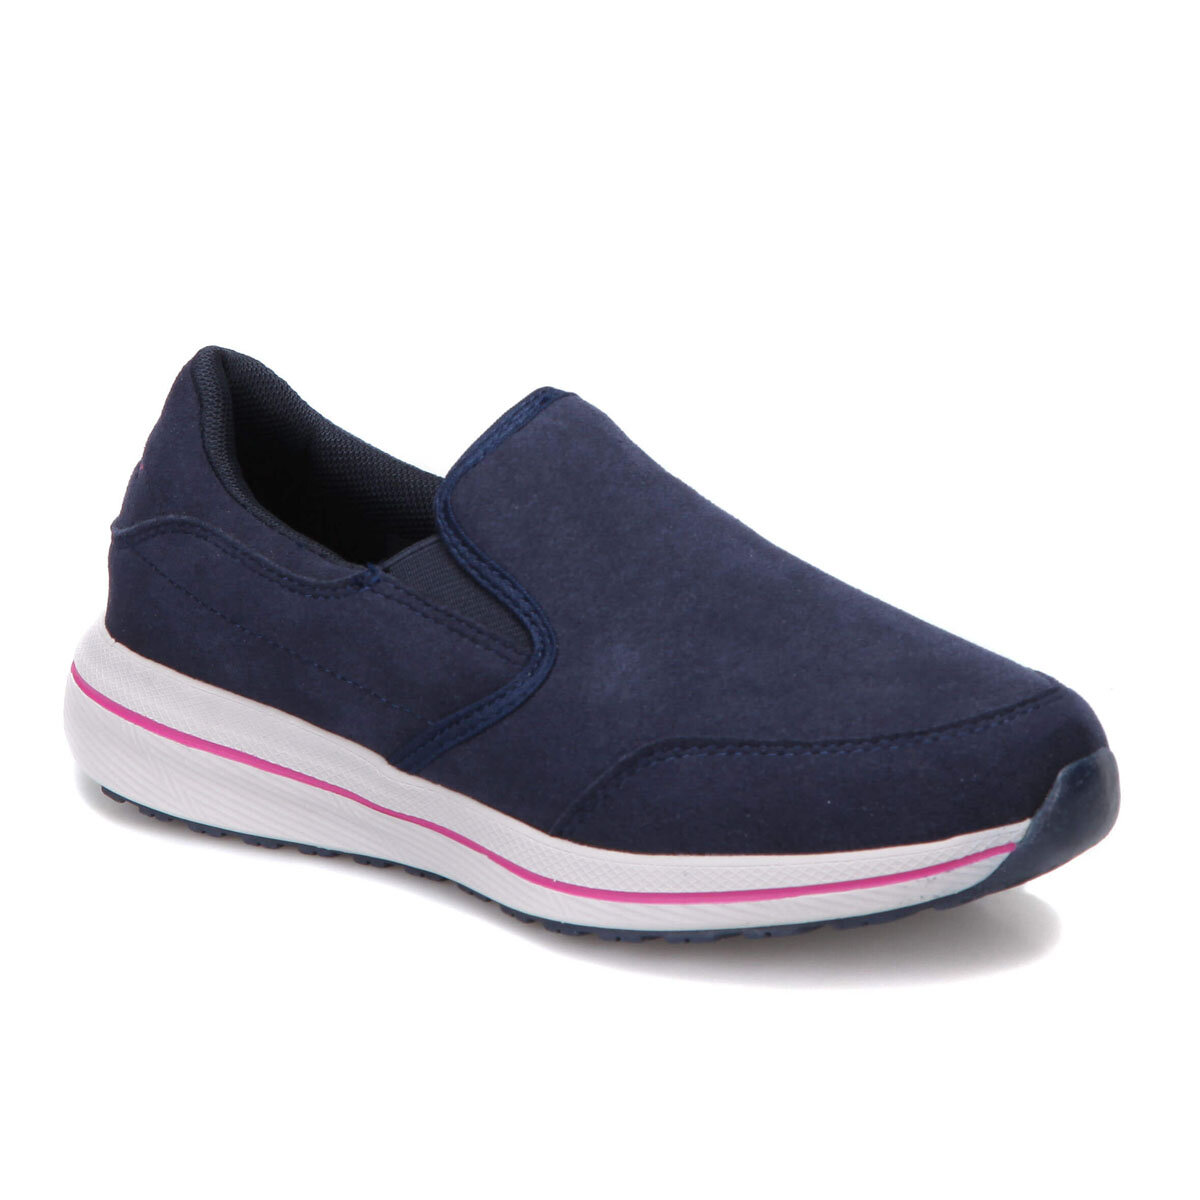 FLO WOLKA W Navy Blue Women 'S Walking Shoes KINETIX